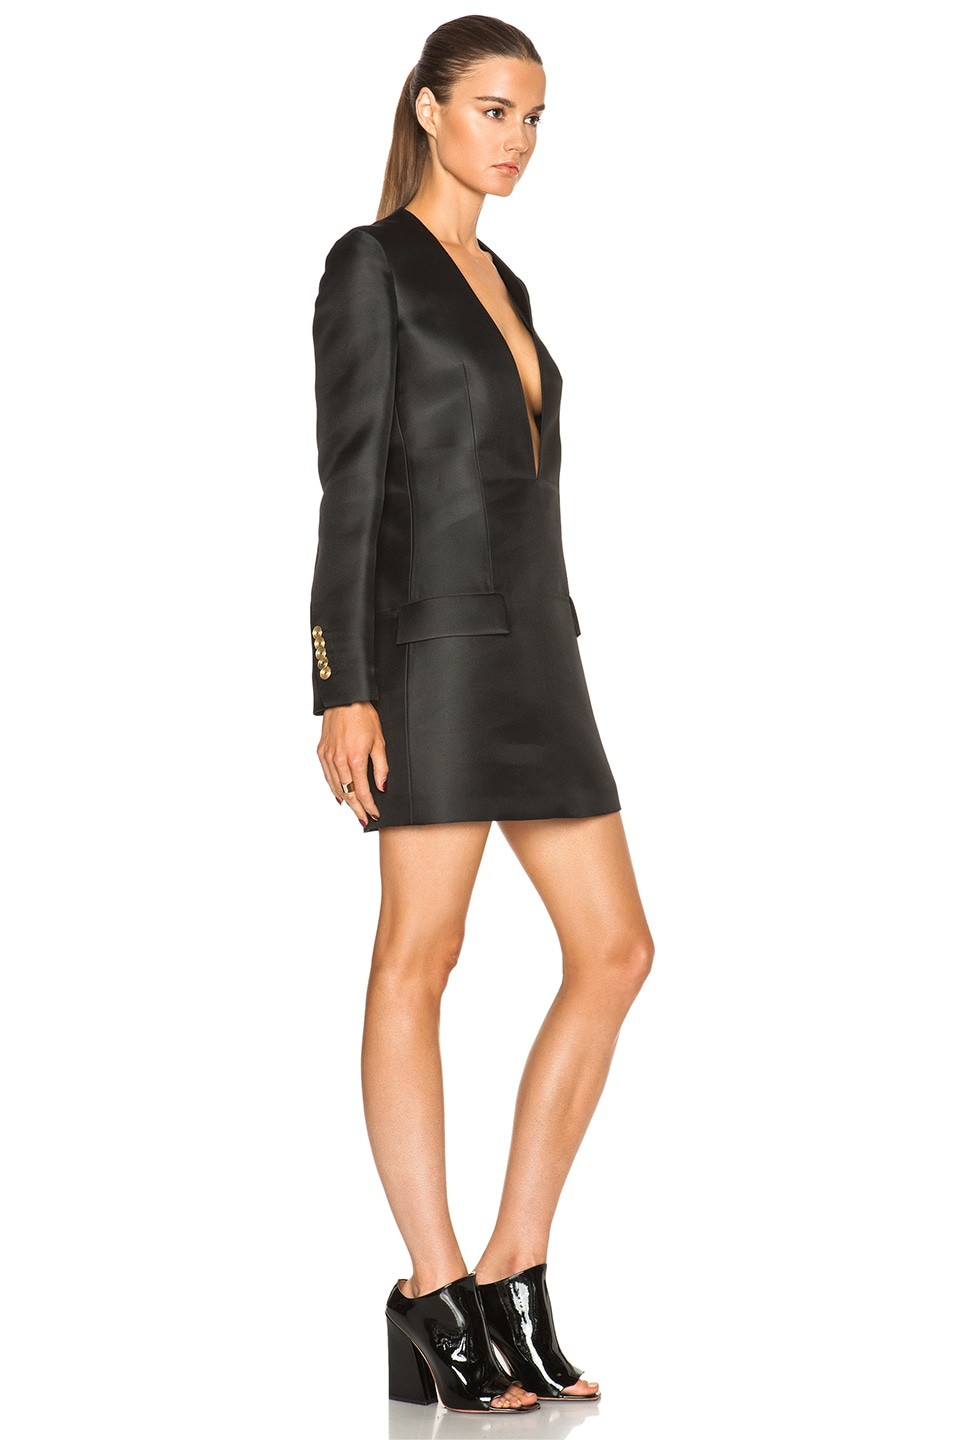 Acne Studios Ryde Organza Suit Jacket Dress in Black | FWRD